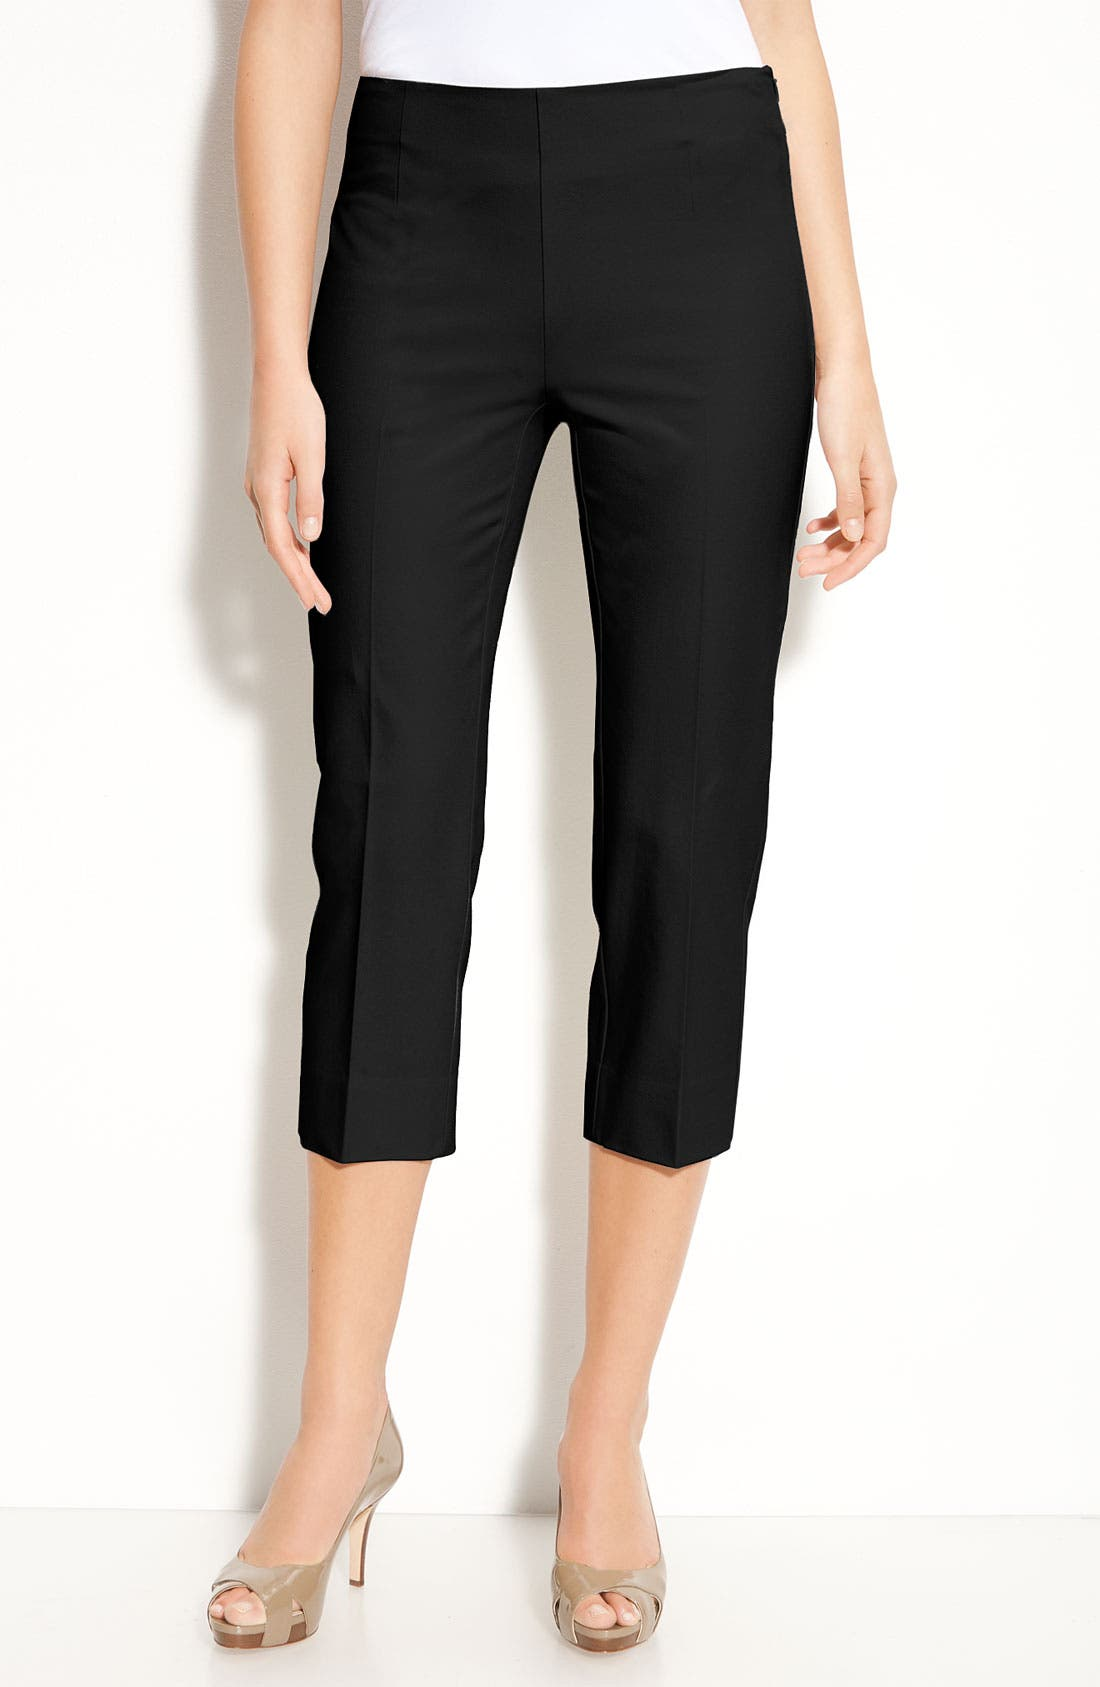 Main Image - Gallia Moda Side Zip Crop Pants